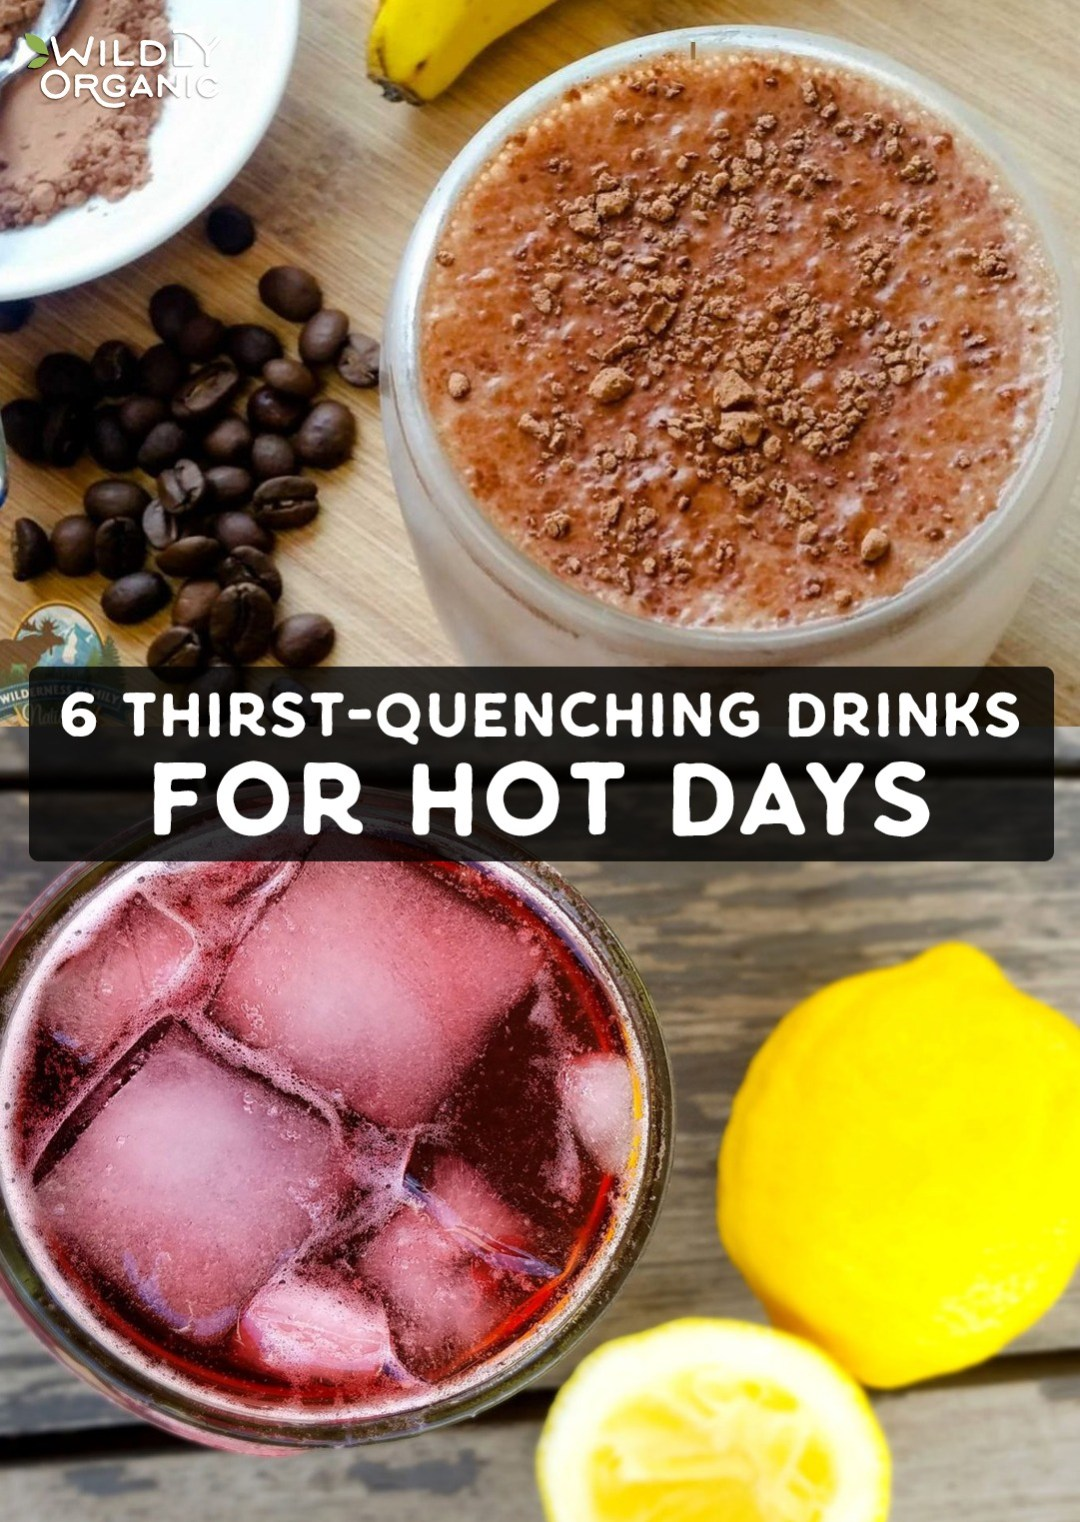 6 Thirst-Quenching Drinks for Hot Days | Don't reach for sugar-laden sports drinks, instead make your own refreshing drinks at home that are hydrating, filling and delicious, too. From fruit forward smoothies to refreshing chia frescas, these thirst-quenching drinks for hot days are made with real food ingredients that are good for you and will keep you going all summer long! #glutenfree #realfood #allergyfriendly #drinks #refreshing